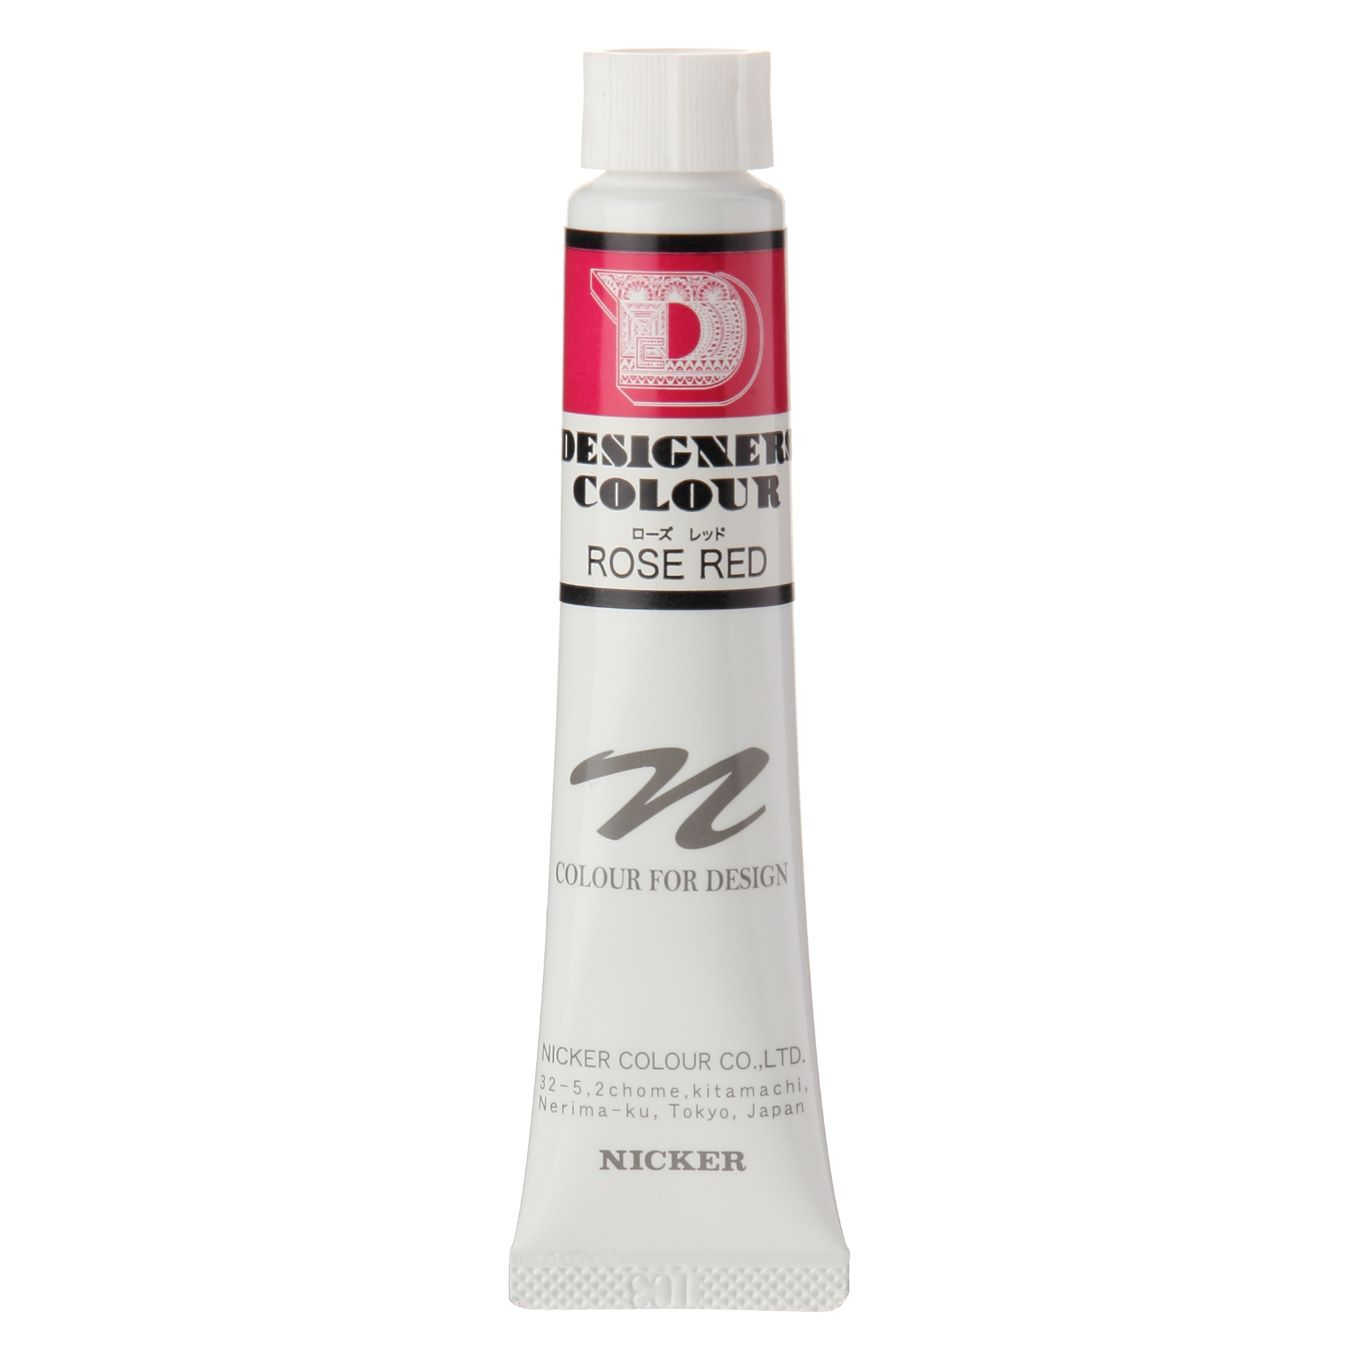 DESIGNERS COLOUR 20ml 525 ROSE RED